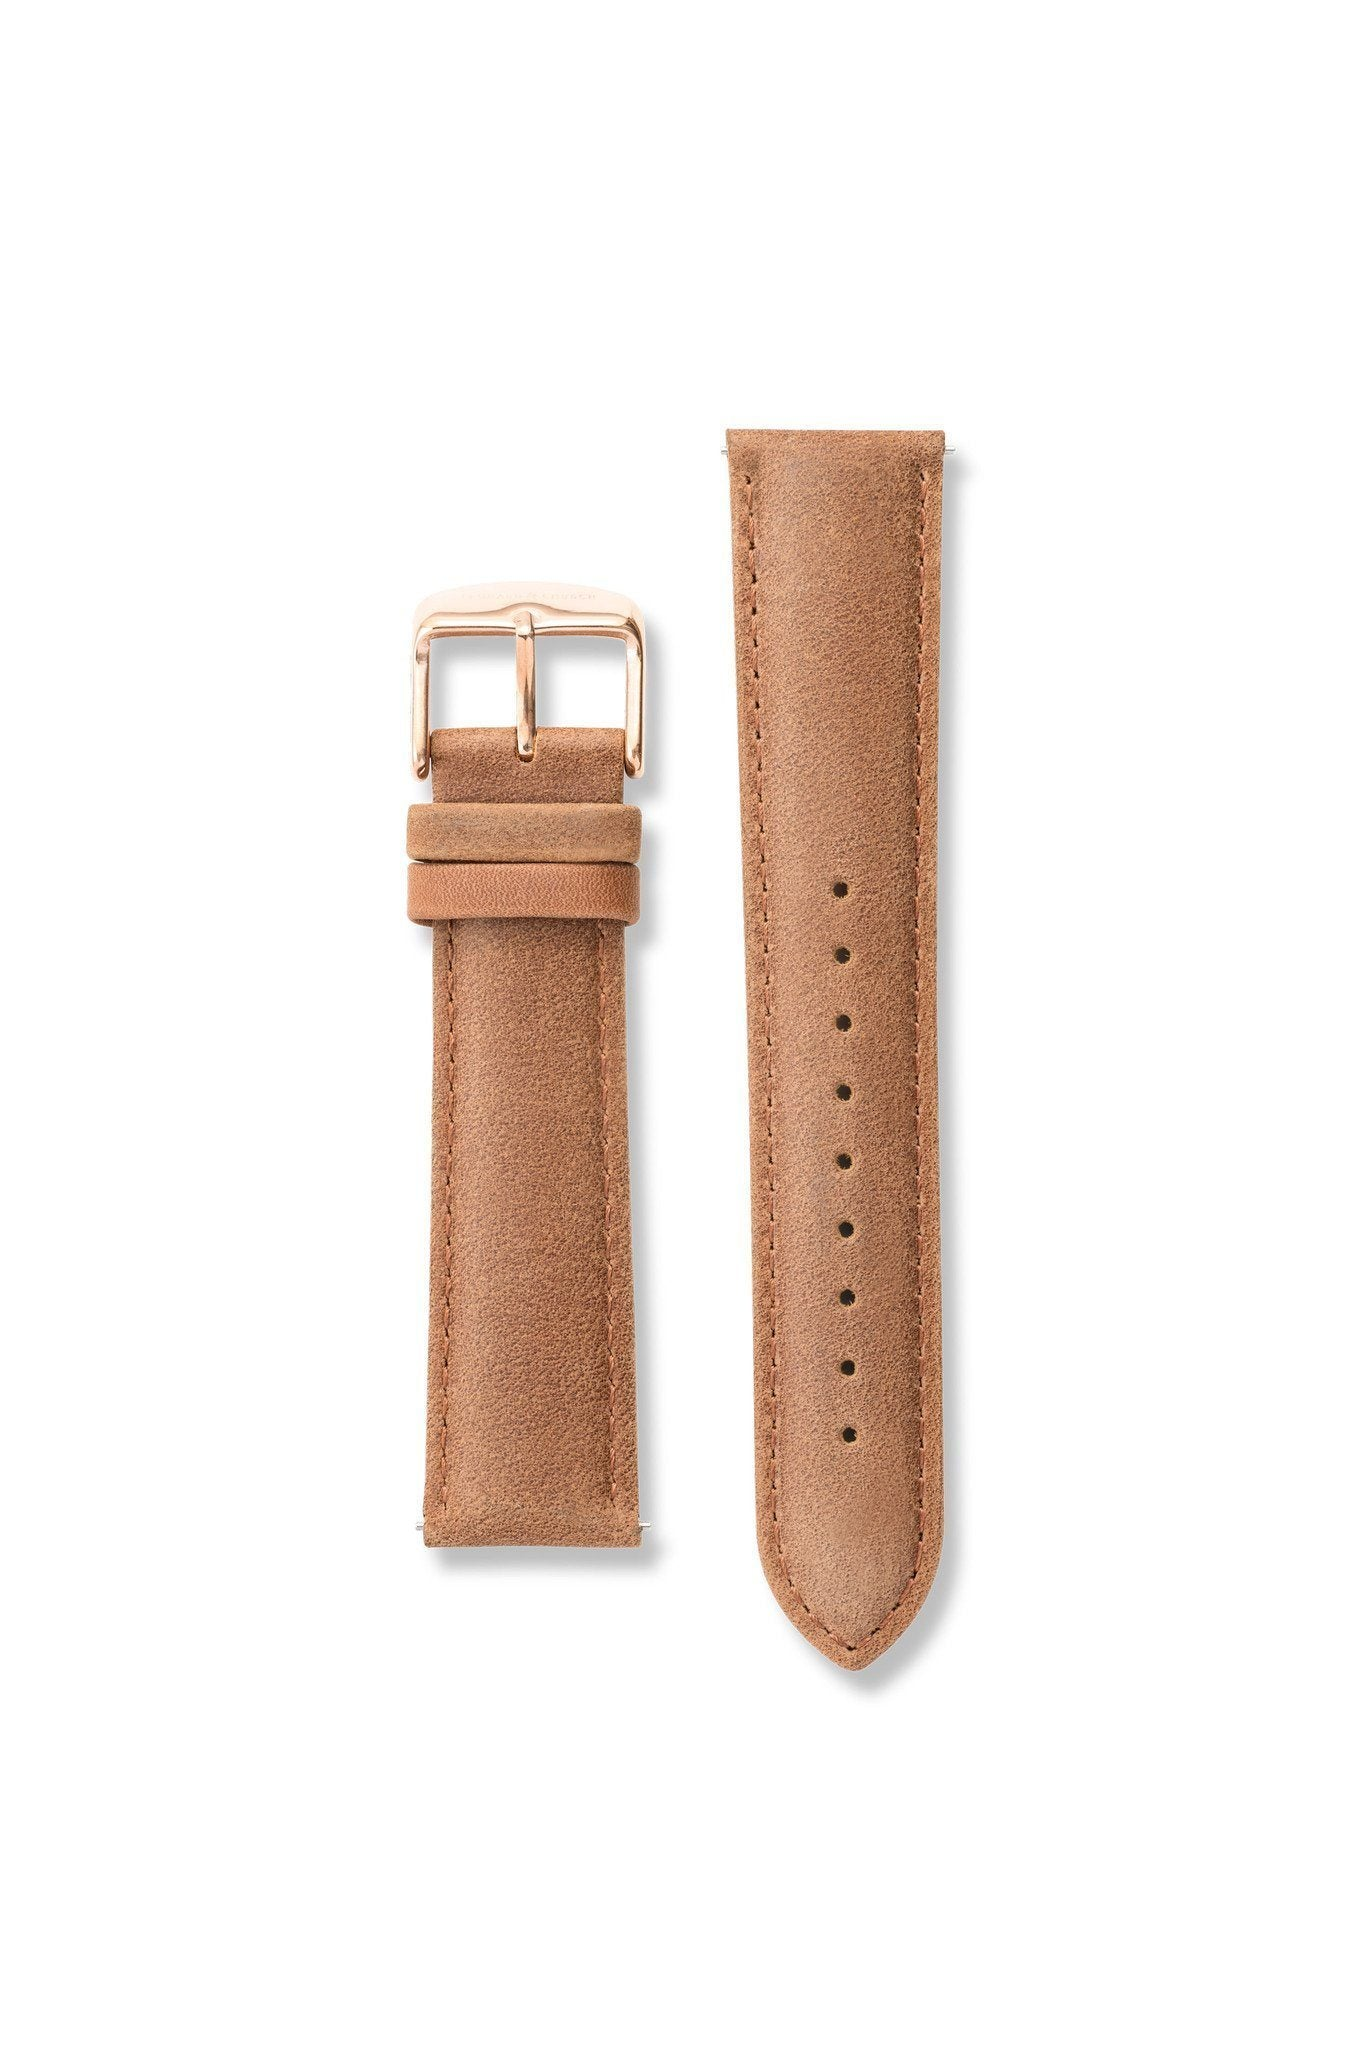 Strap - Suede Leather Tan / Rose Gold Strap